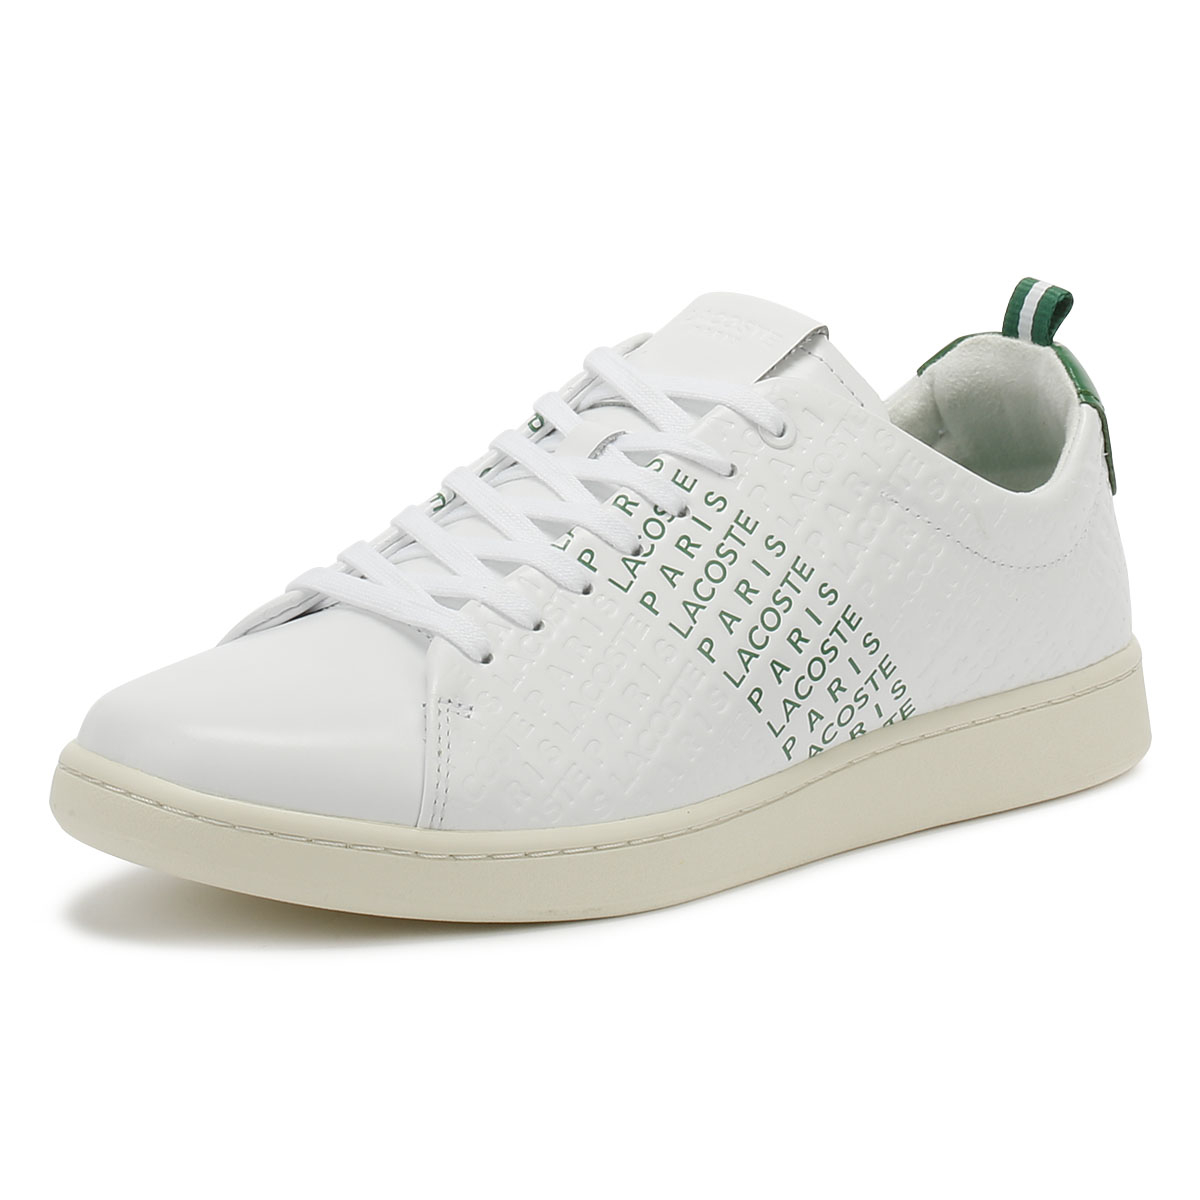 8f169ddc1 Lacoste Carnaby EVO 119 9 Mens White   Green Trainers Sport Casual Shoes